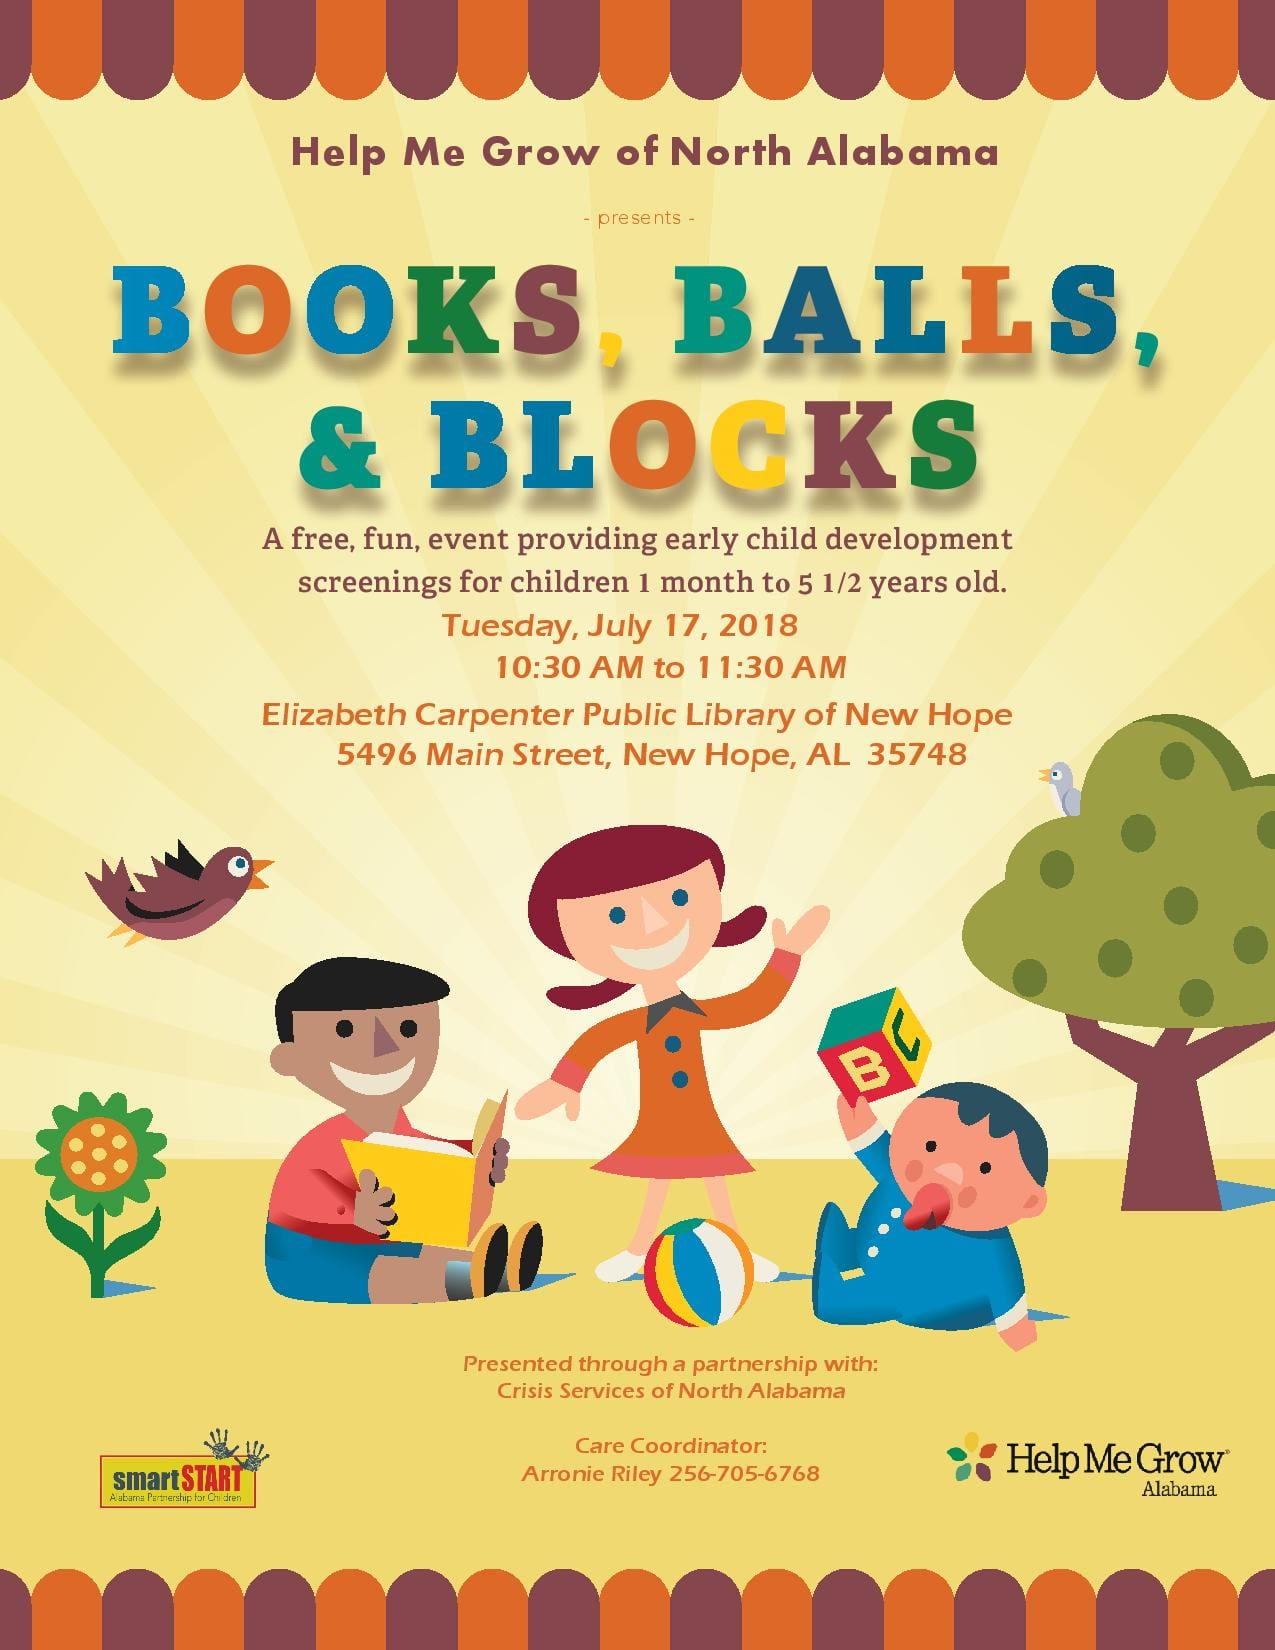 Books, Balls, & Blocks